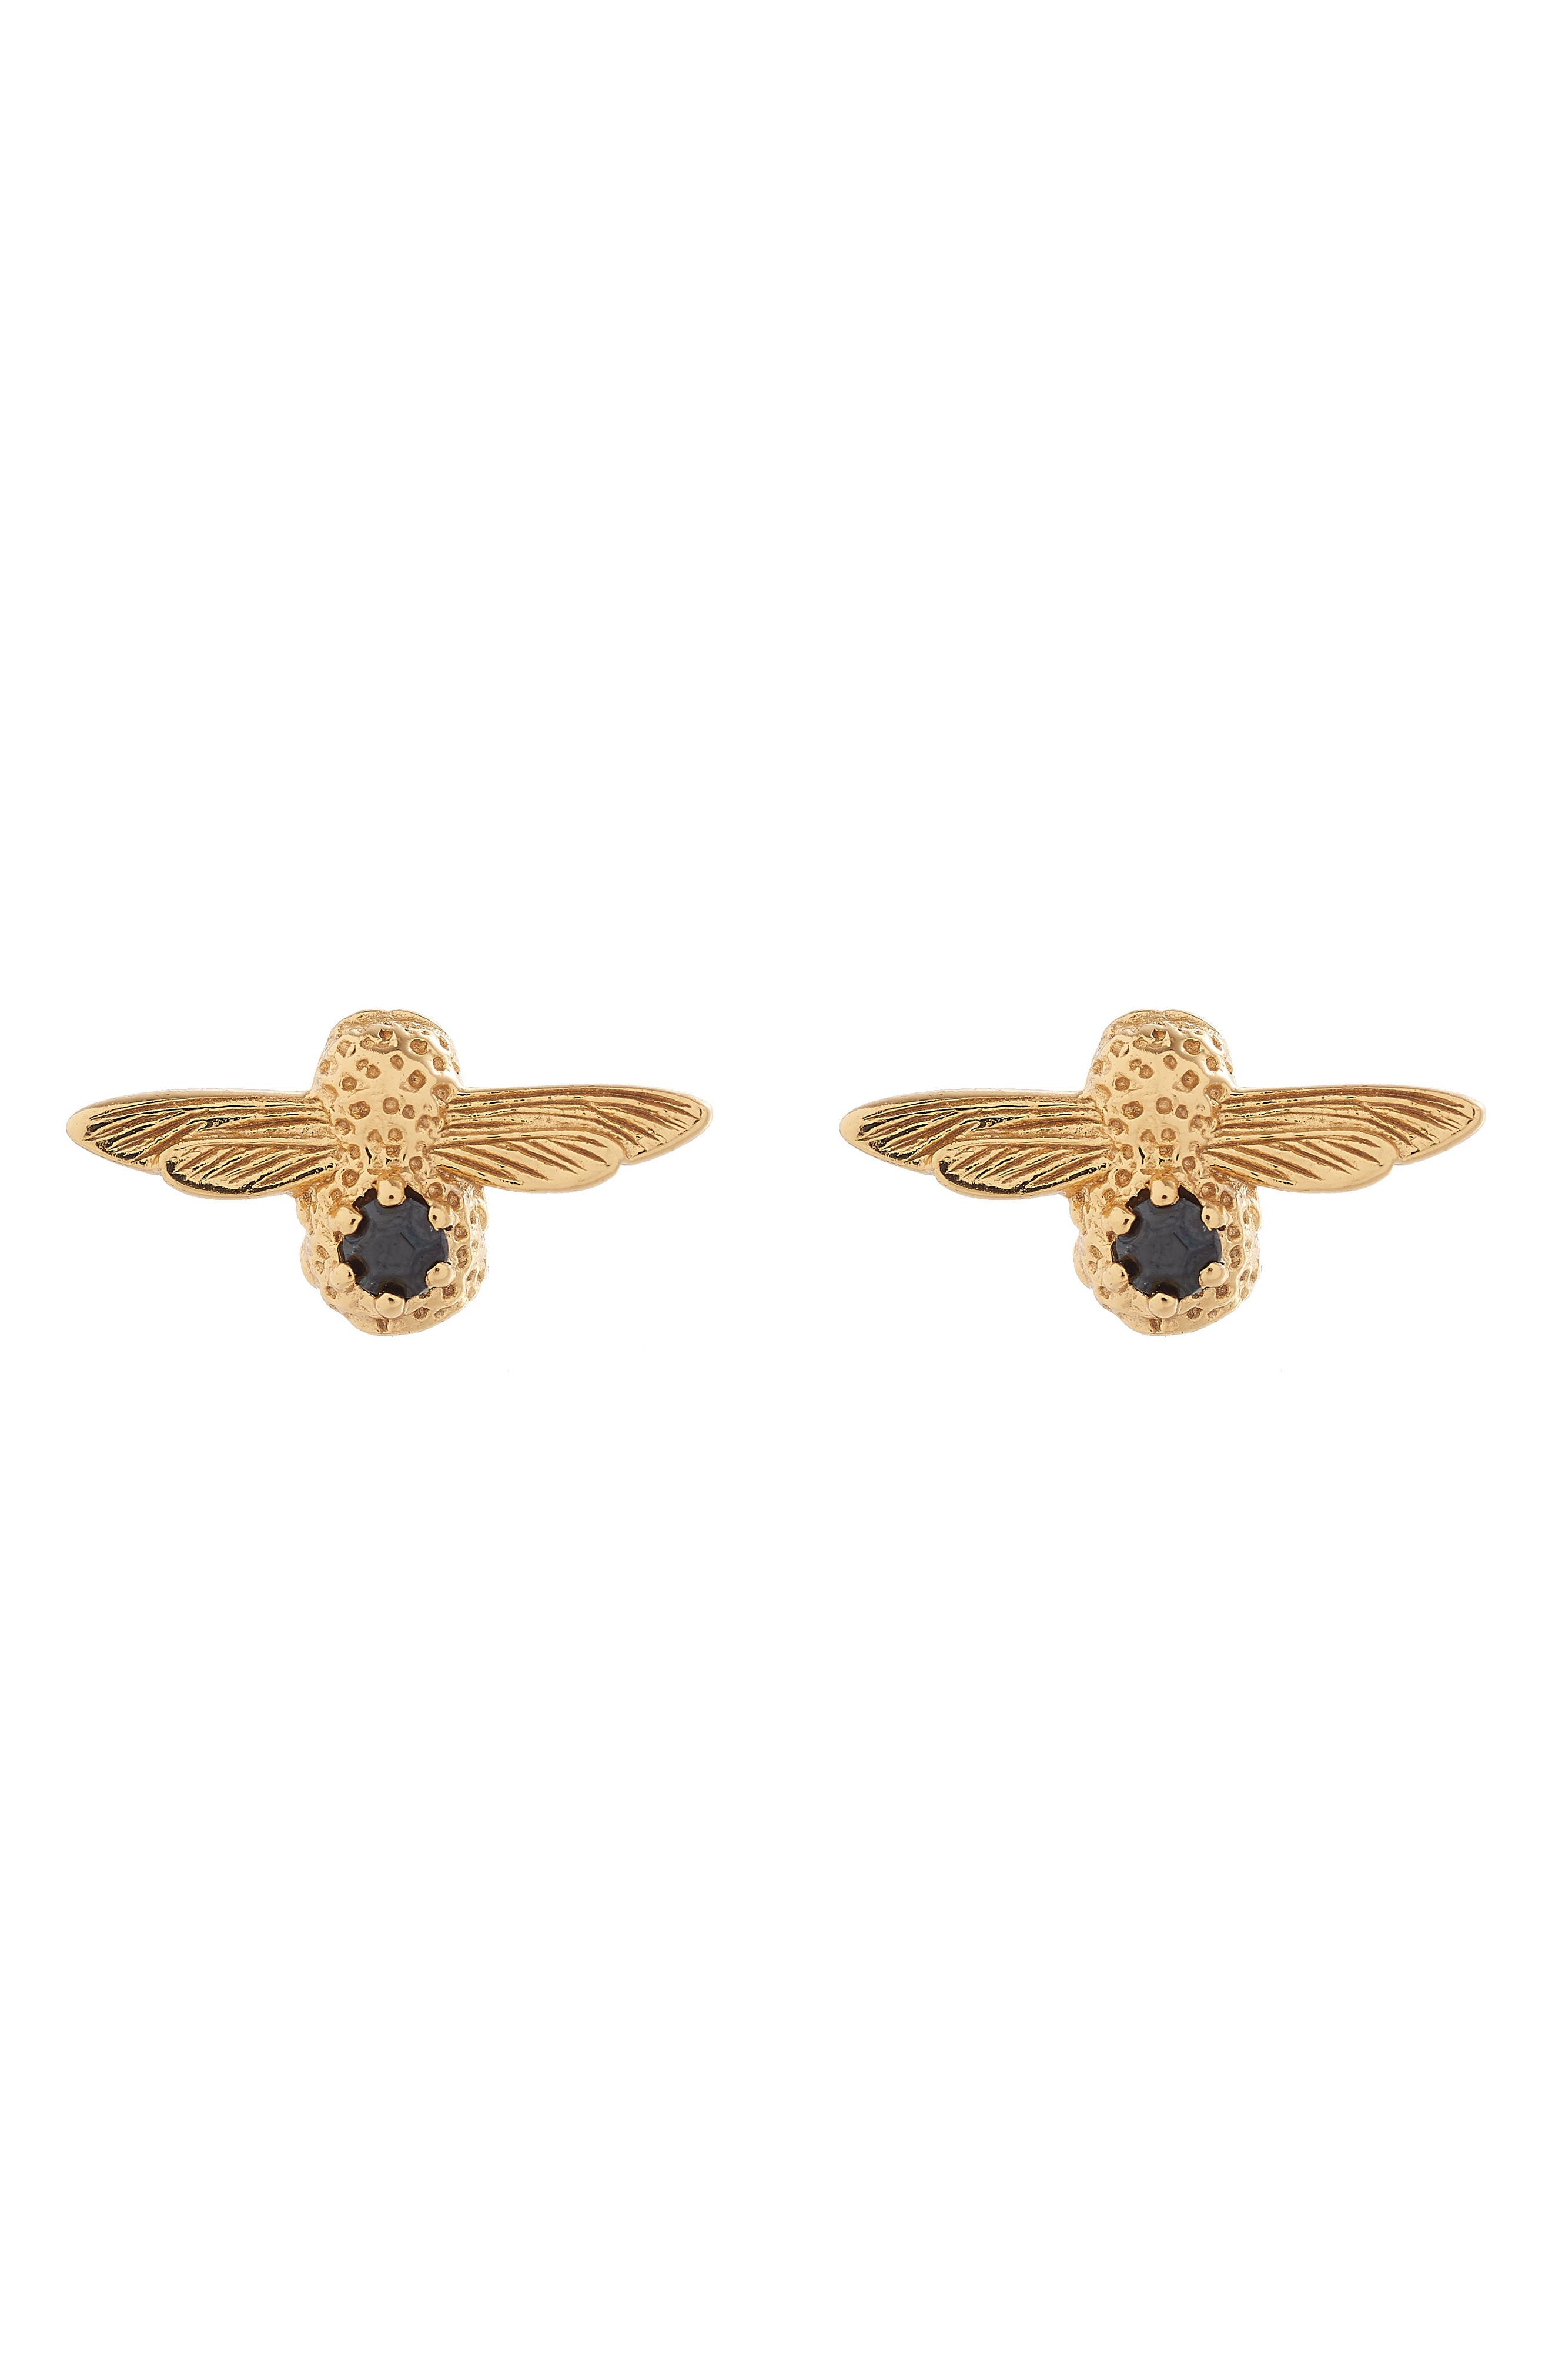 Olivia Burton 3D Bejeweled Bee Stud Earrings